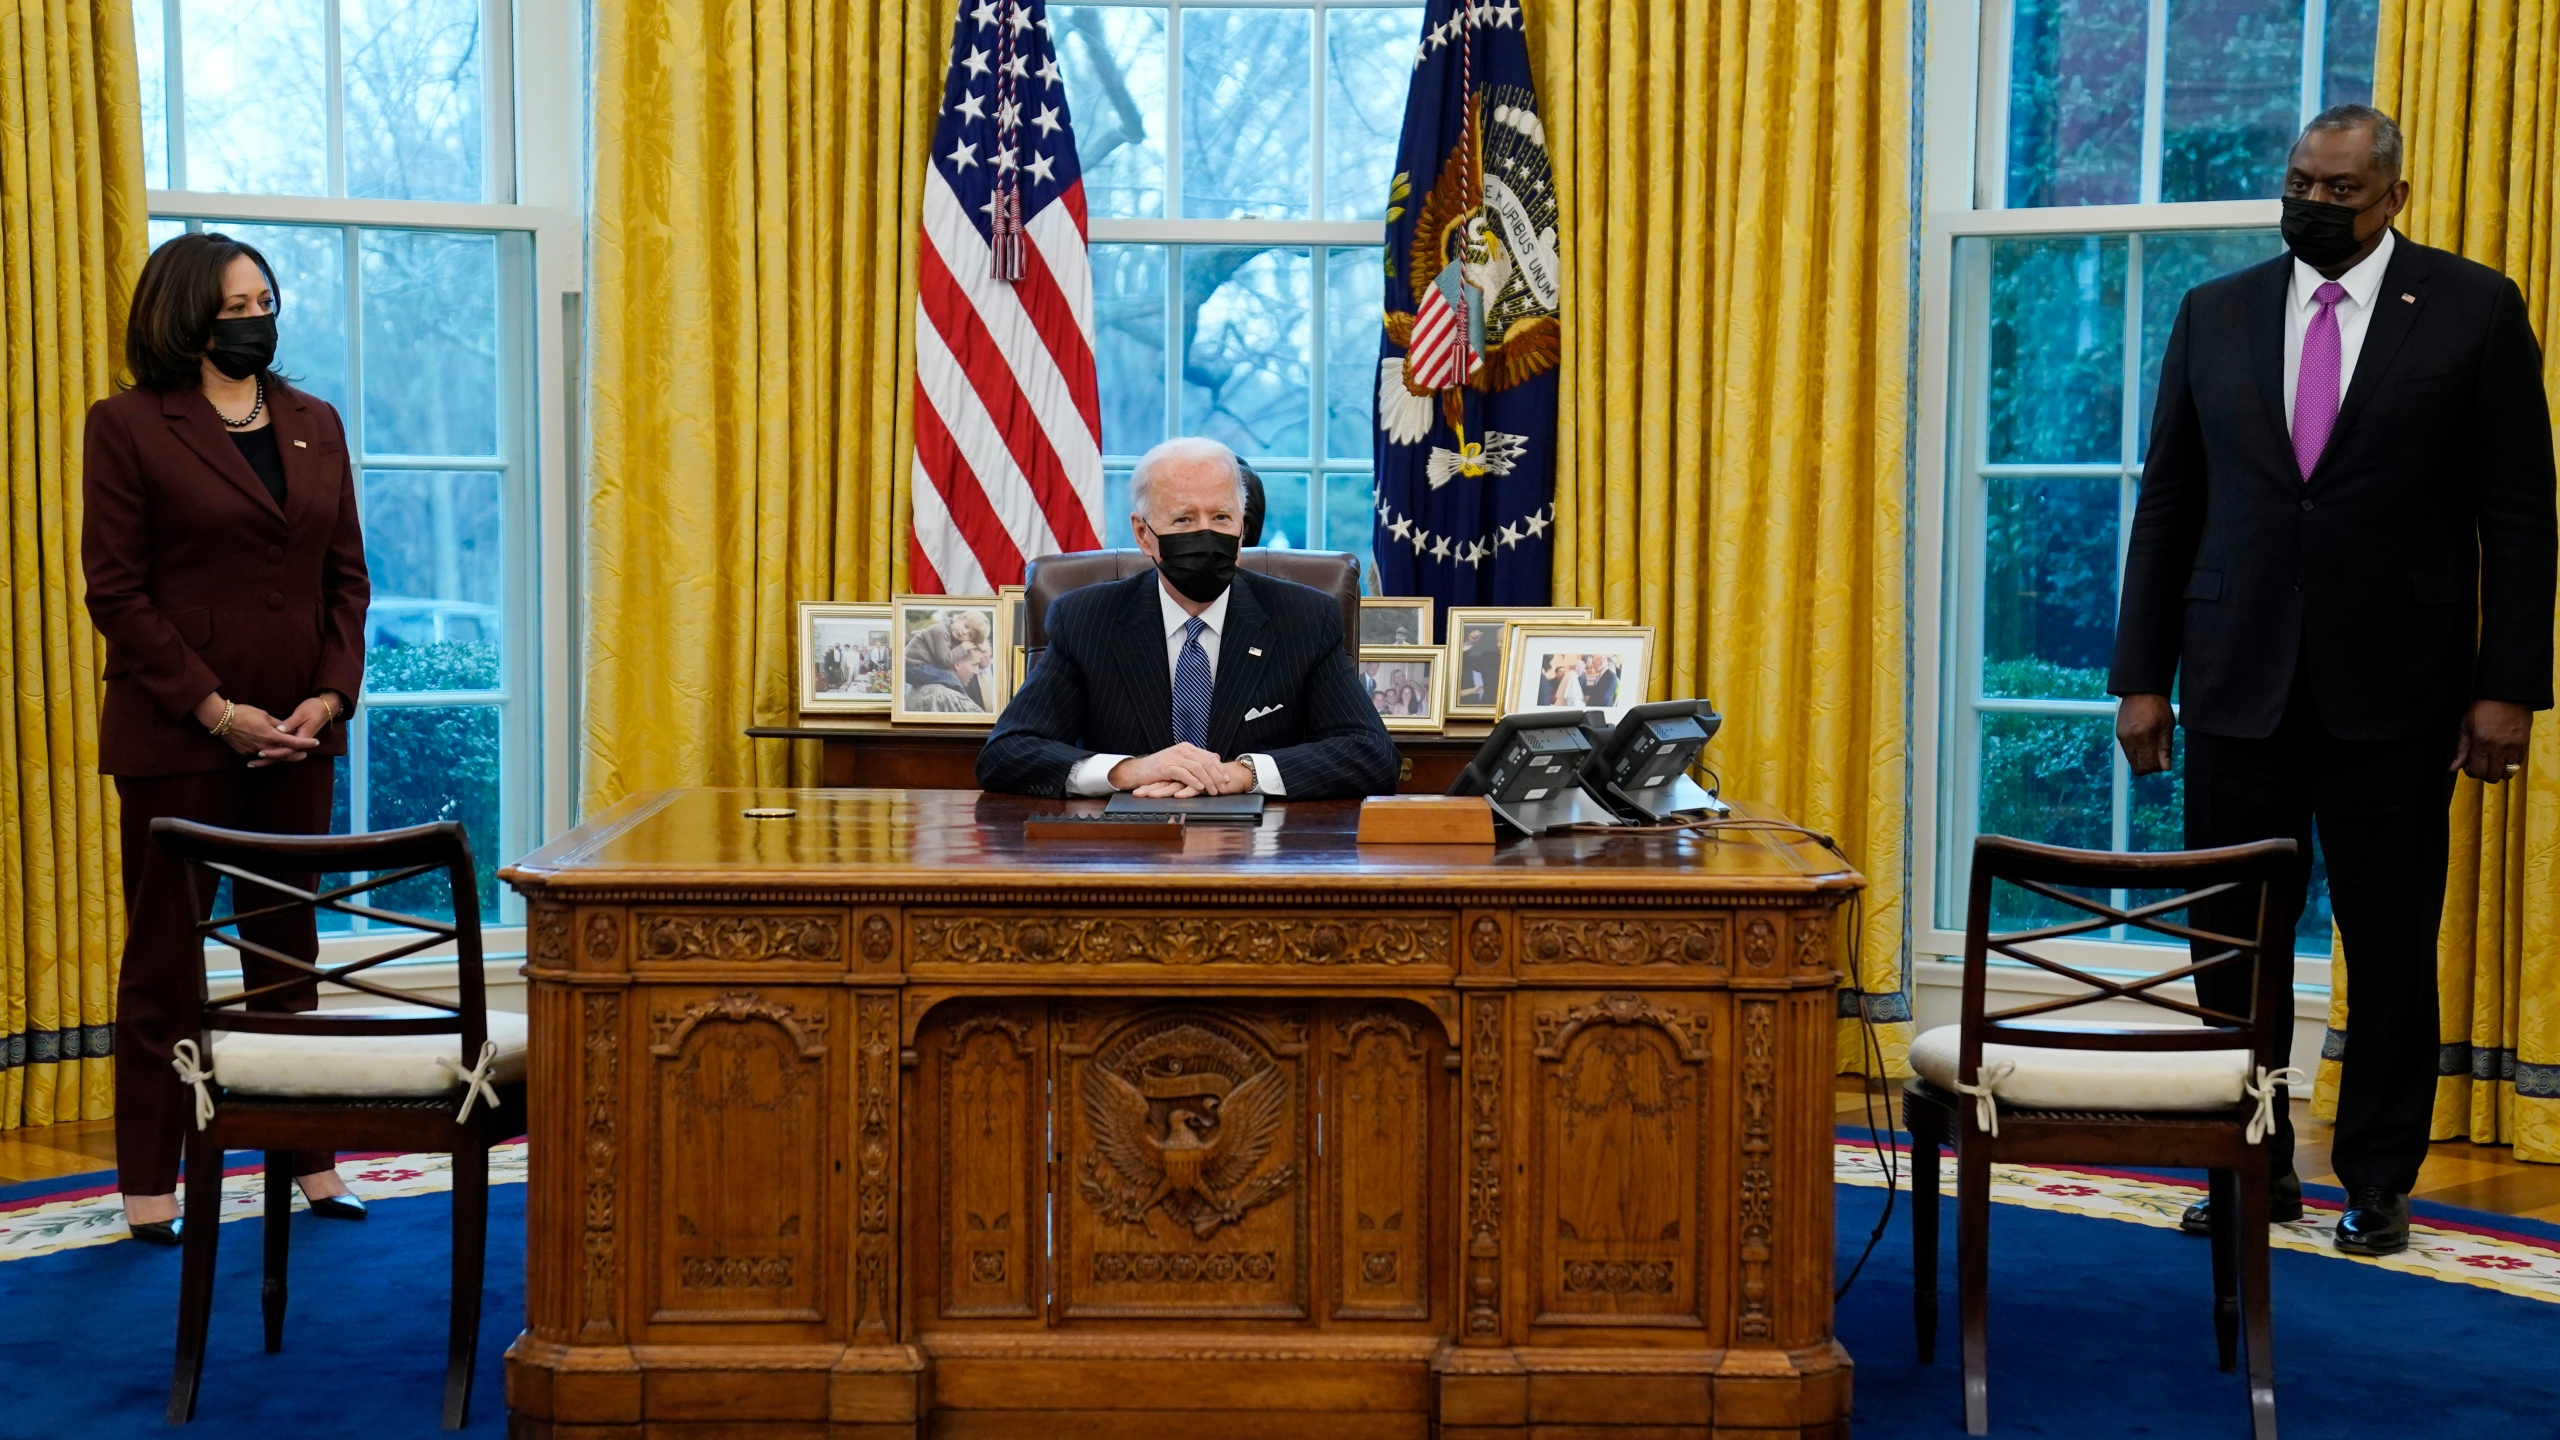 President Joe Biden meets with Secretary of Defense Lloyd Austin, Vice President Kamala Harris, in the Oval Office of the White House, Monday, Jan. 25, 2021, in Washington. (AP Photo/Evan Vucci)